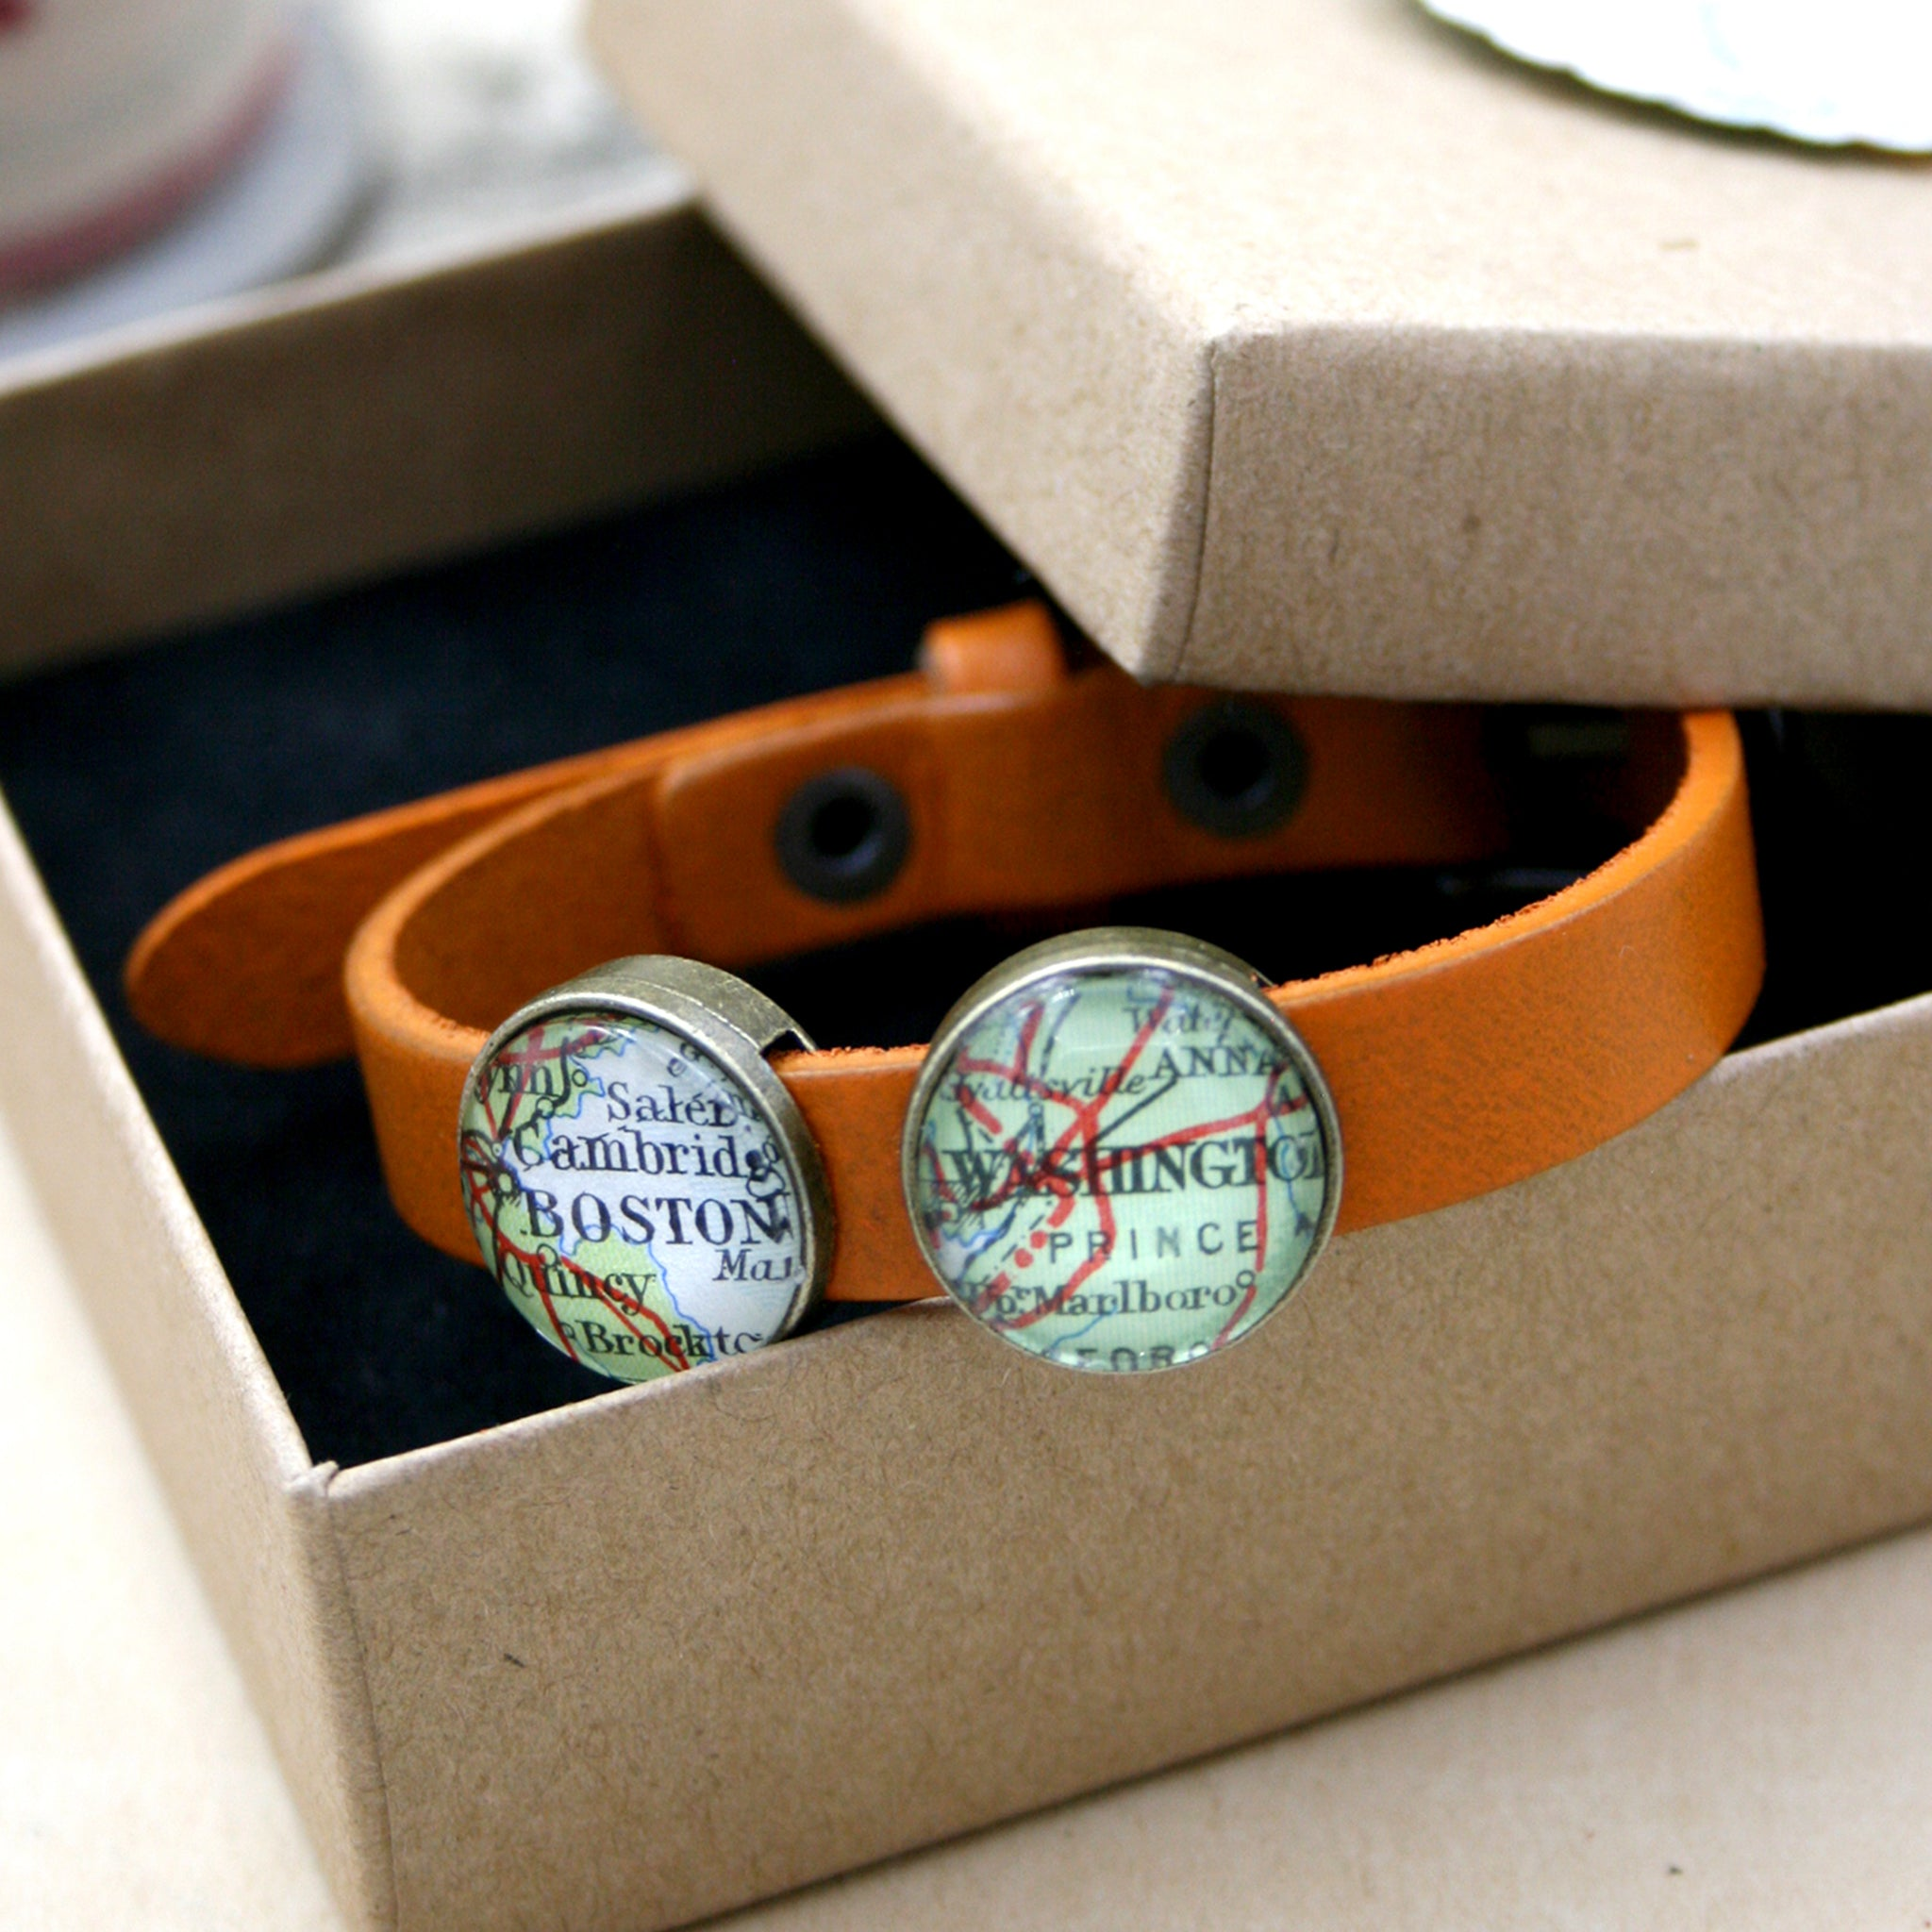 Orange leather bracelet featuring map locations in a box